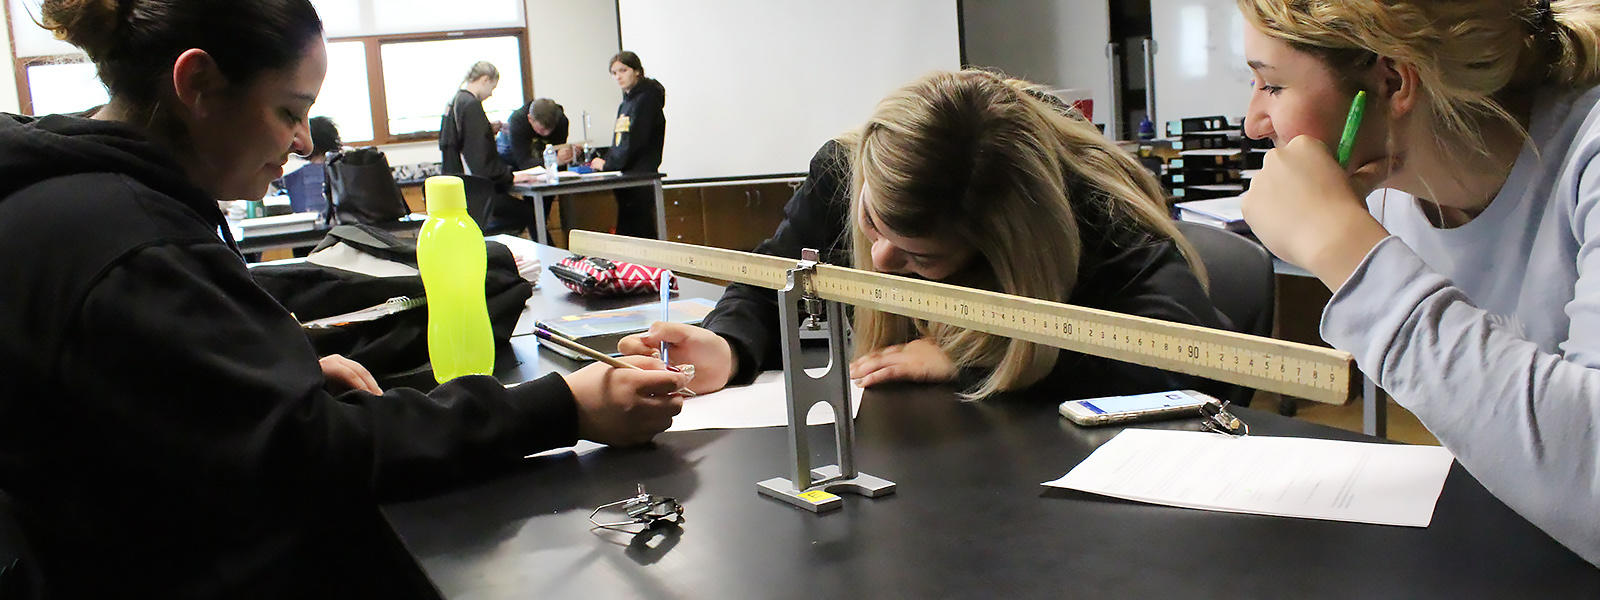 EPHS students work on a science assignment.